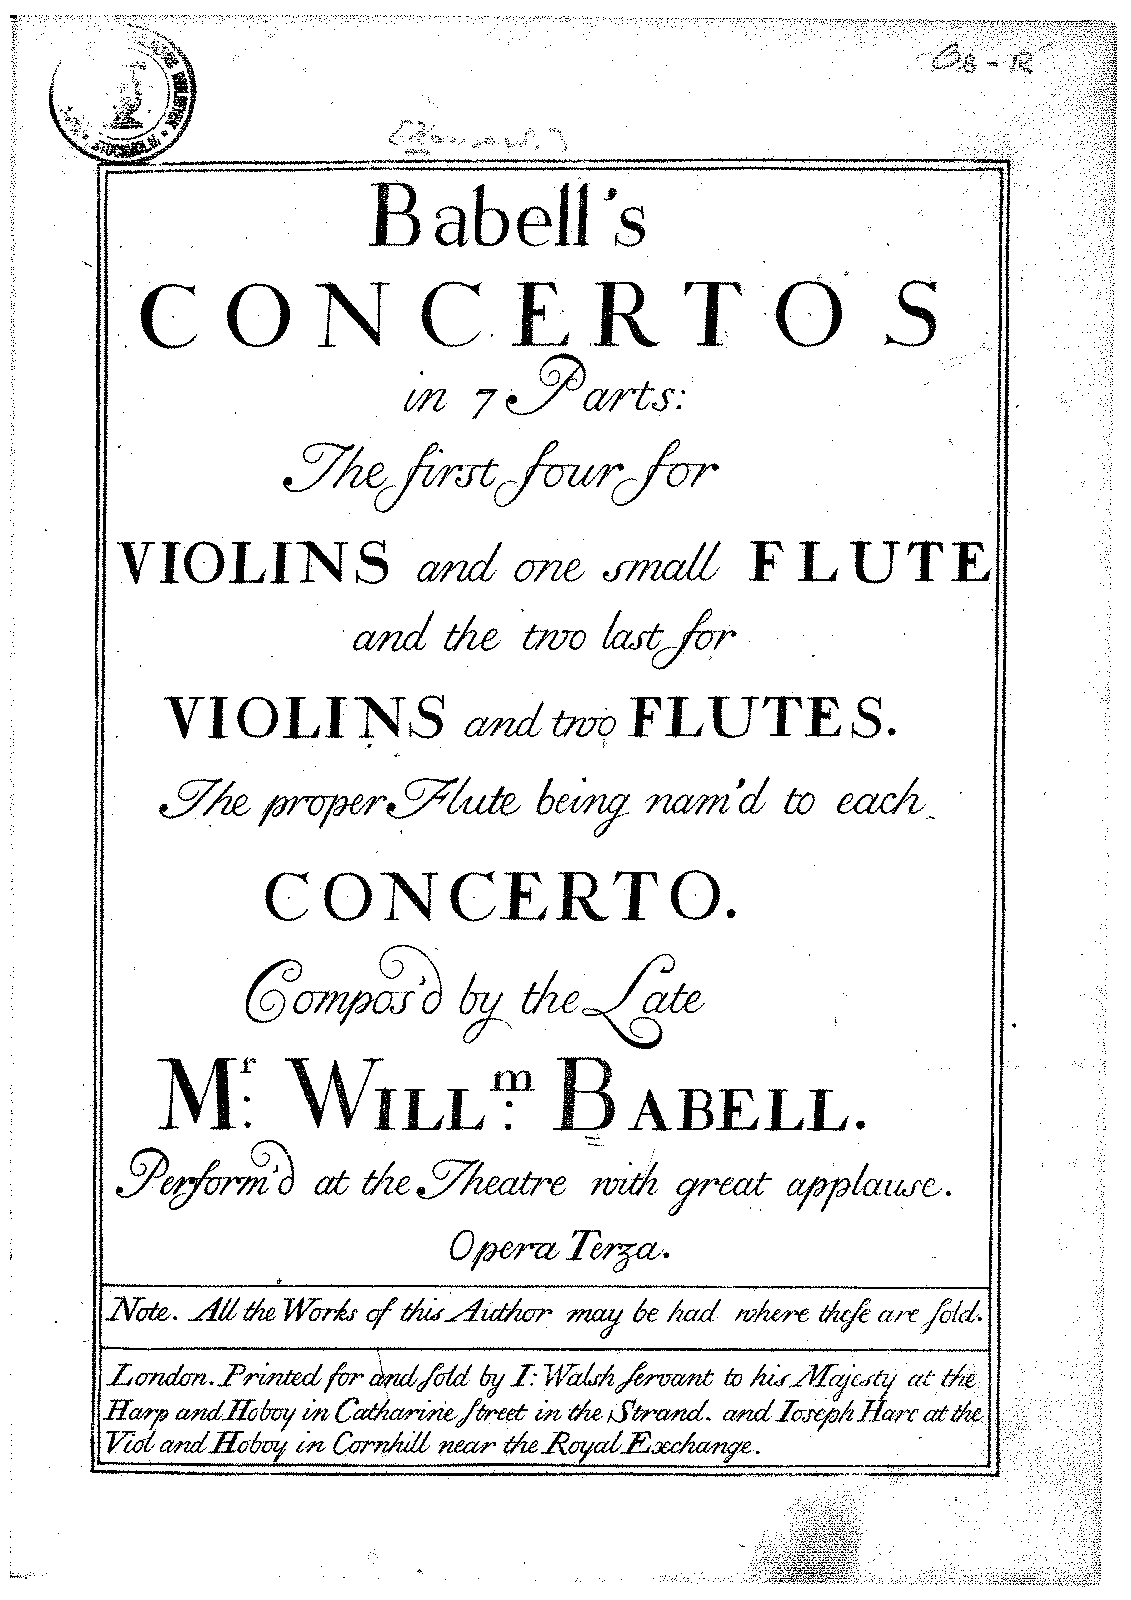 PMLP232562-Babell 6 Concerti a 7 op.3.pdf